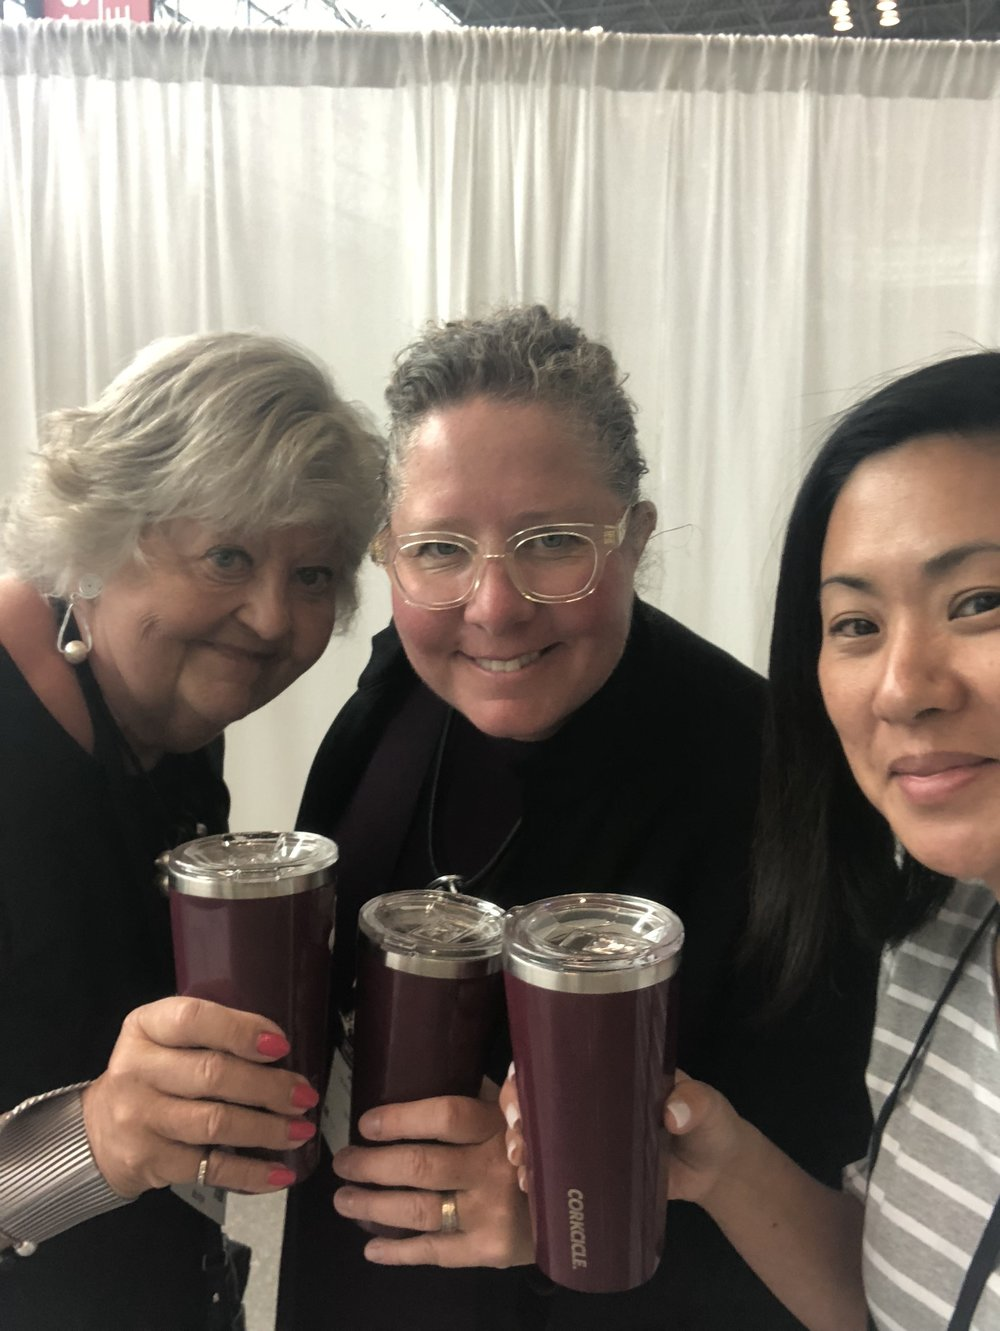 Sandy, with daughters Heather and Melissa, celebrate another successful buying trip at the NY NOW Show in NYC, August 2018.